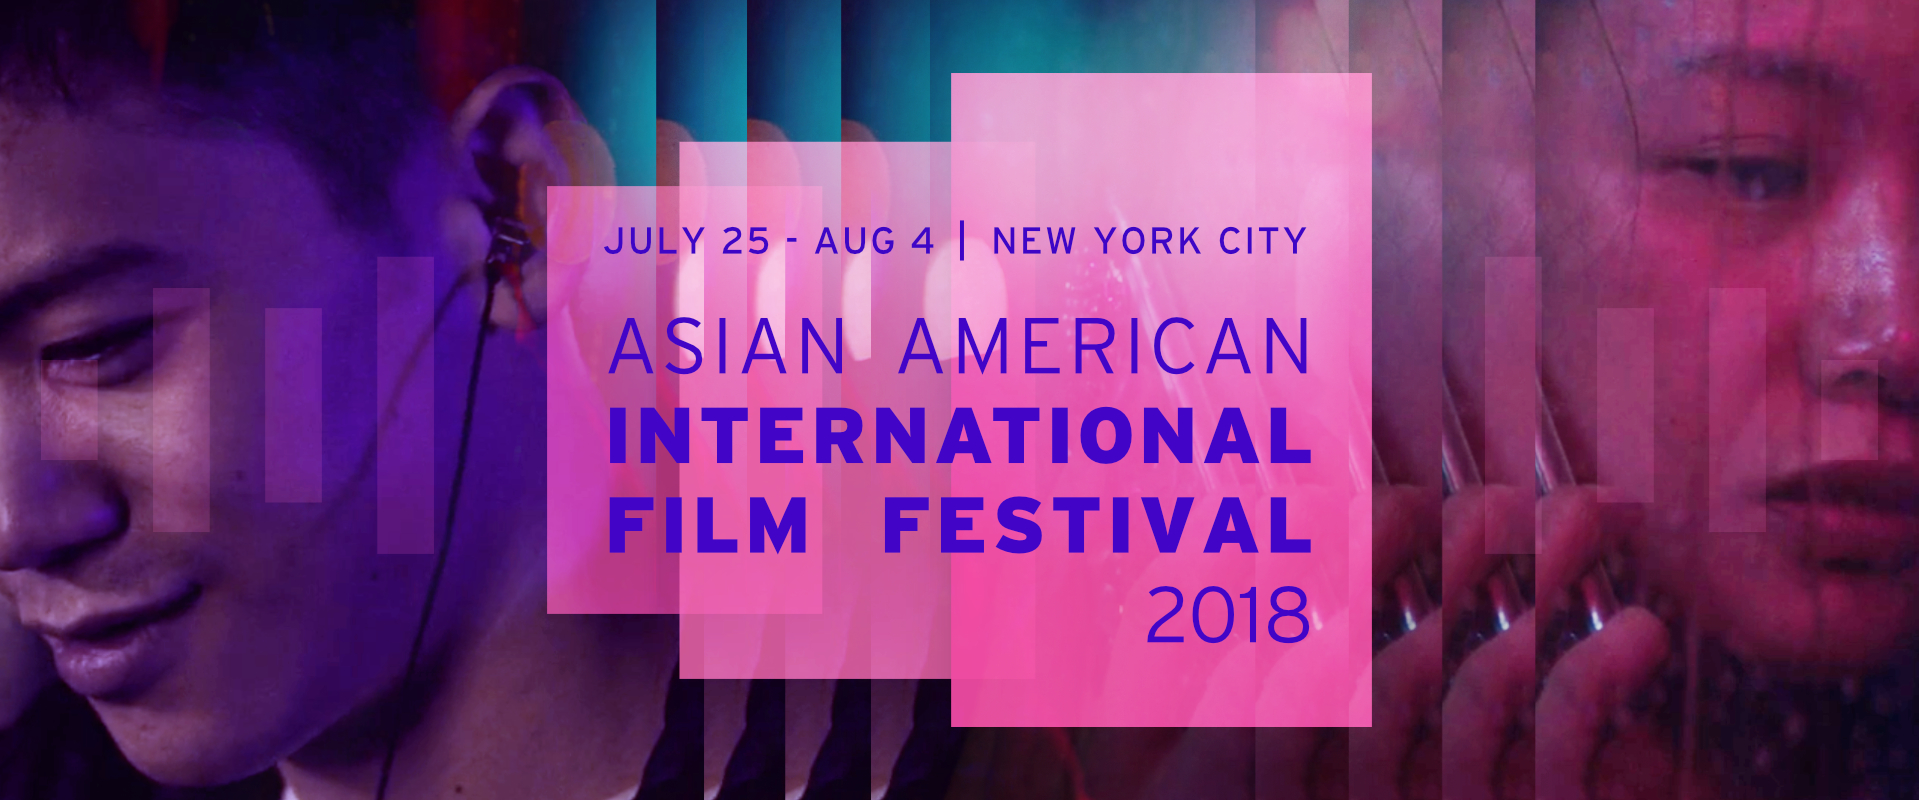 Asian American International Film Festival